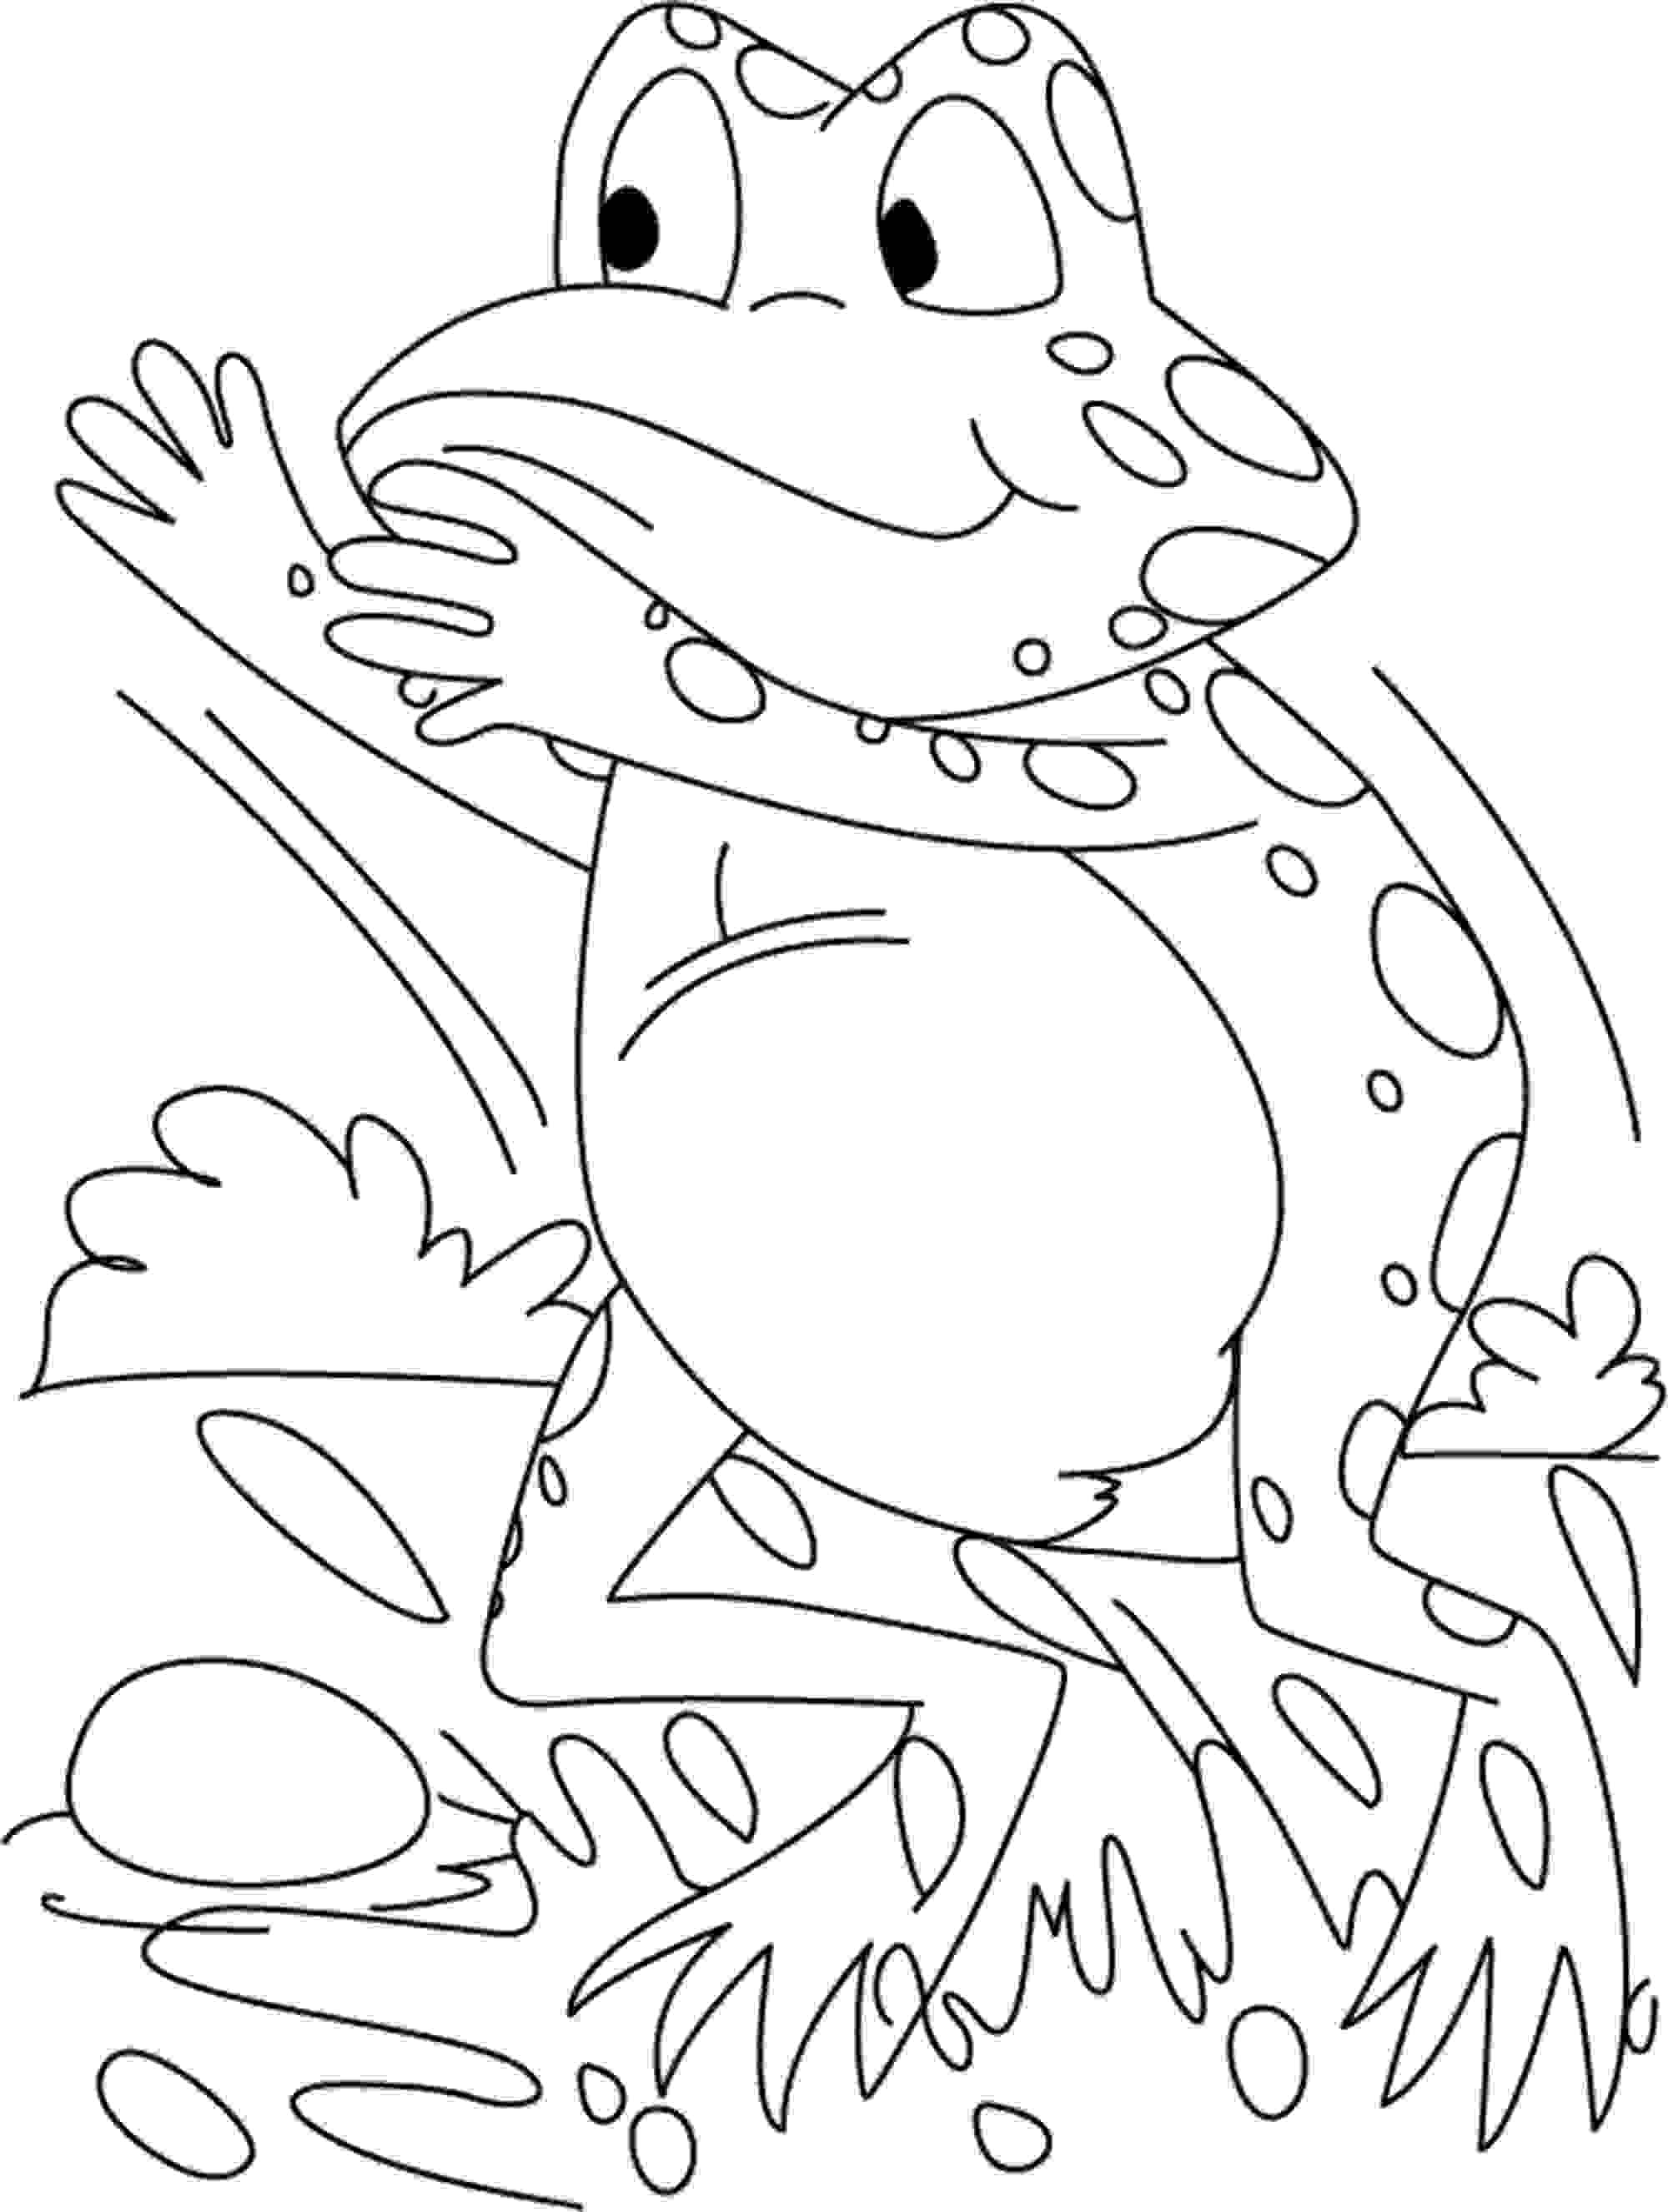 Free Frog Coloring Pages At Getdrawings Com Free For Personal Use